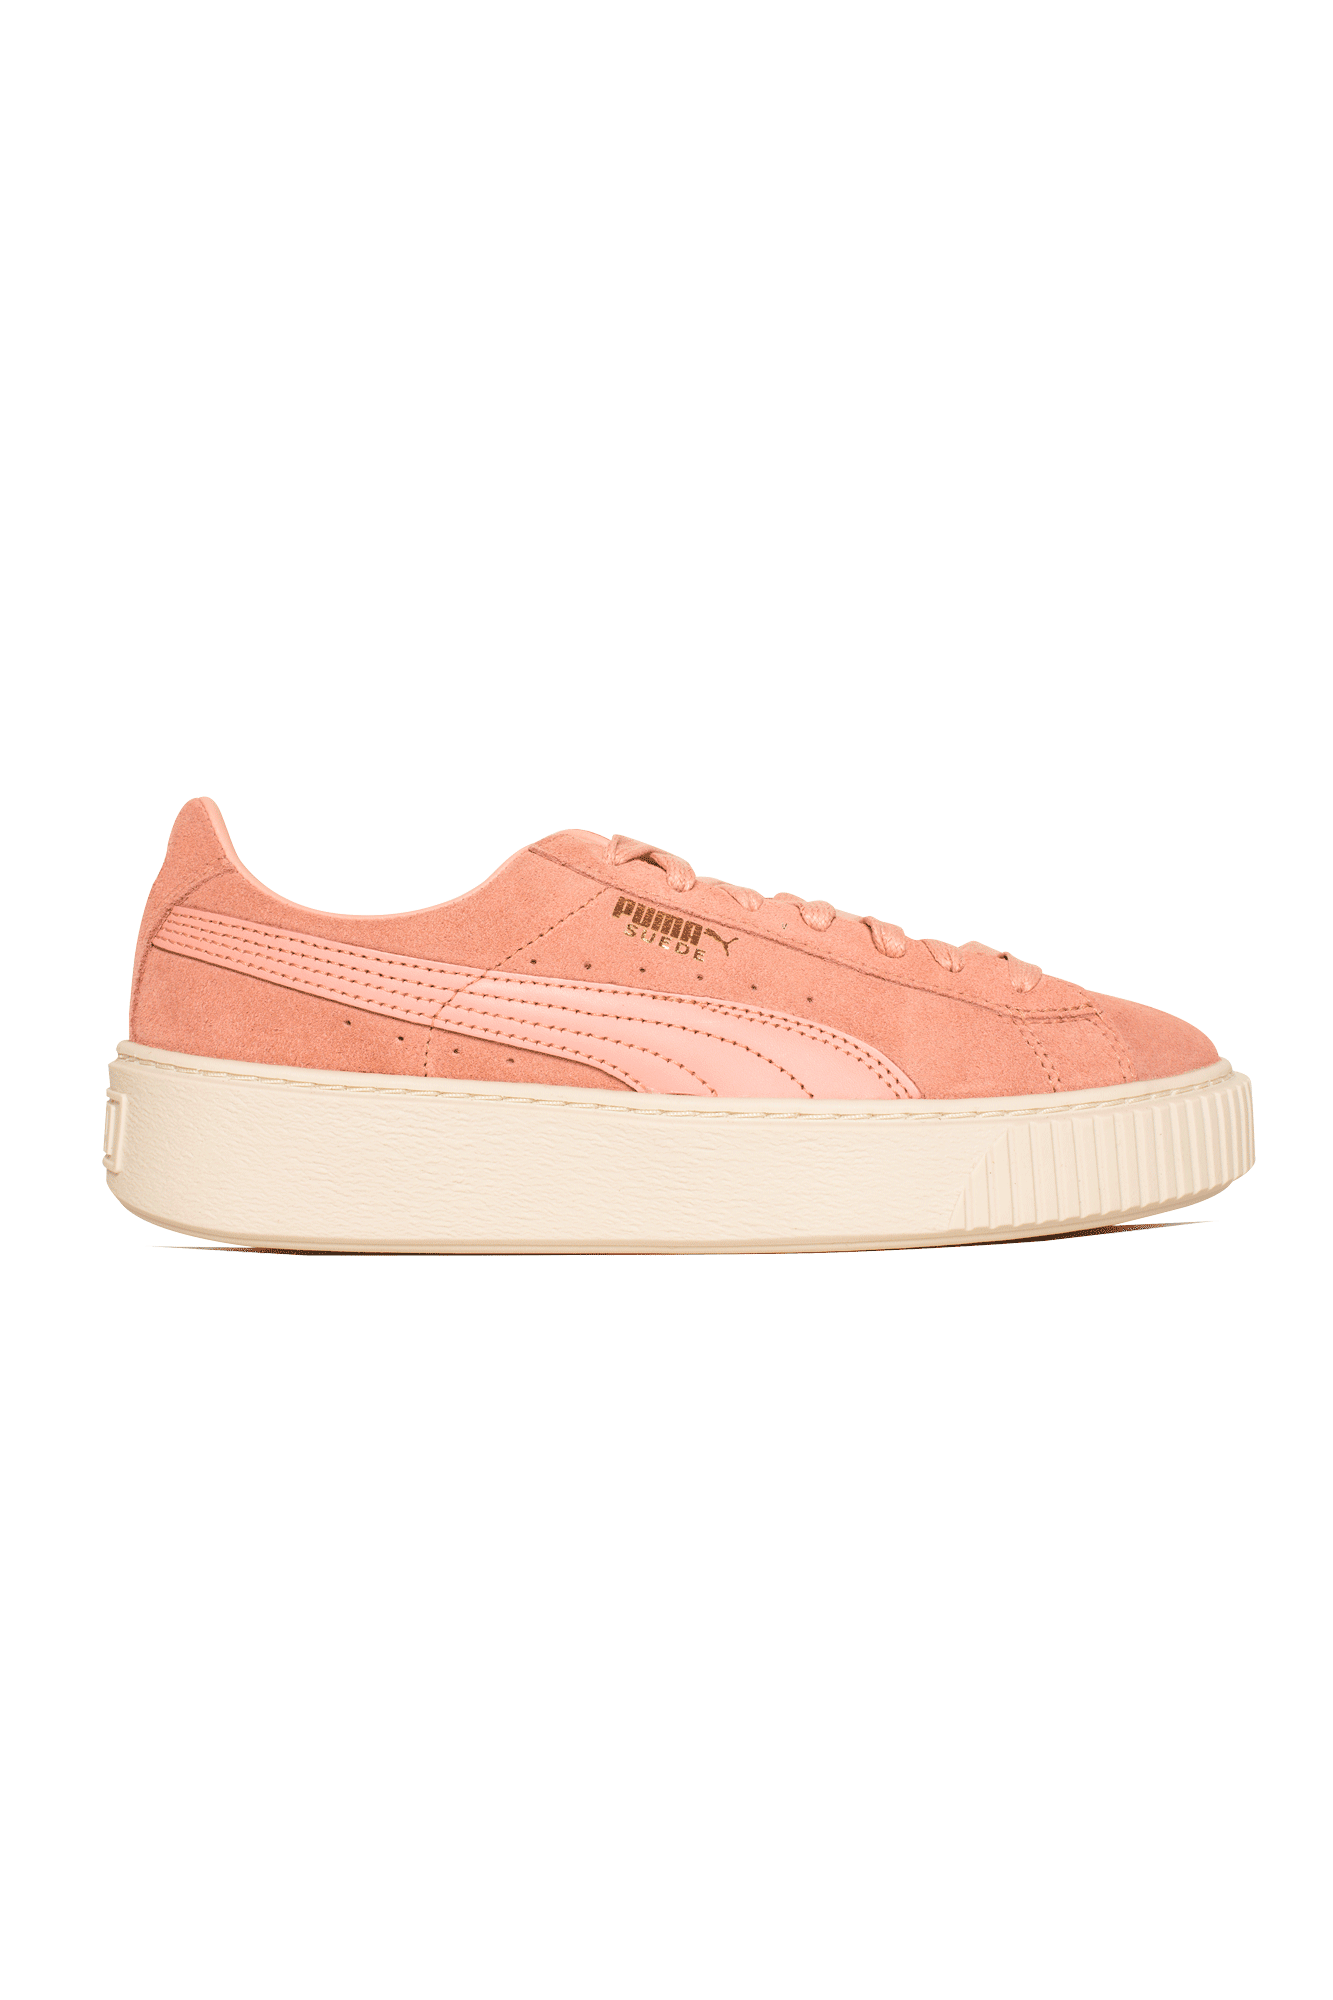 Puma Sneakers Suede Platform Core Rosa 363559#000#05#8 - One Block Down